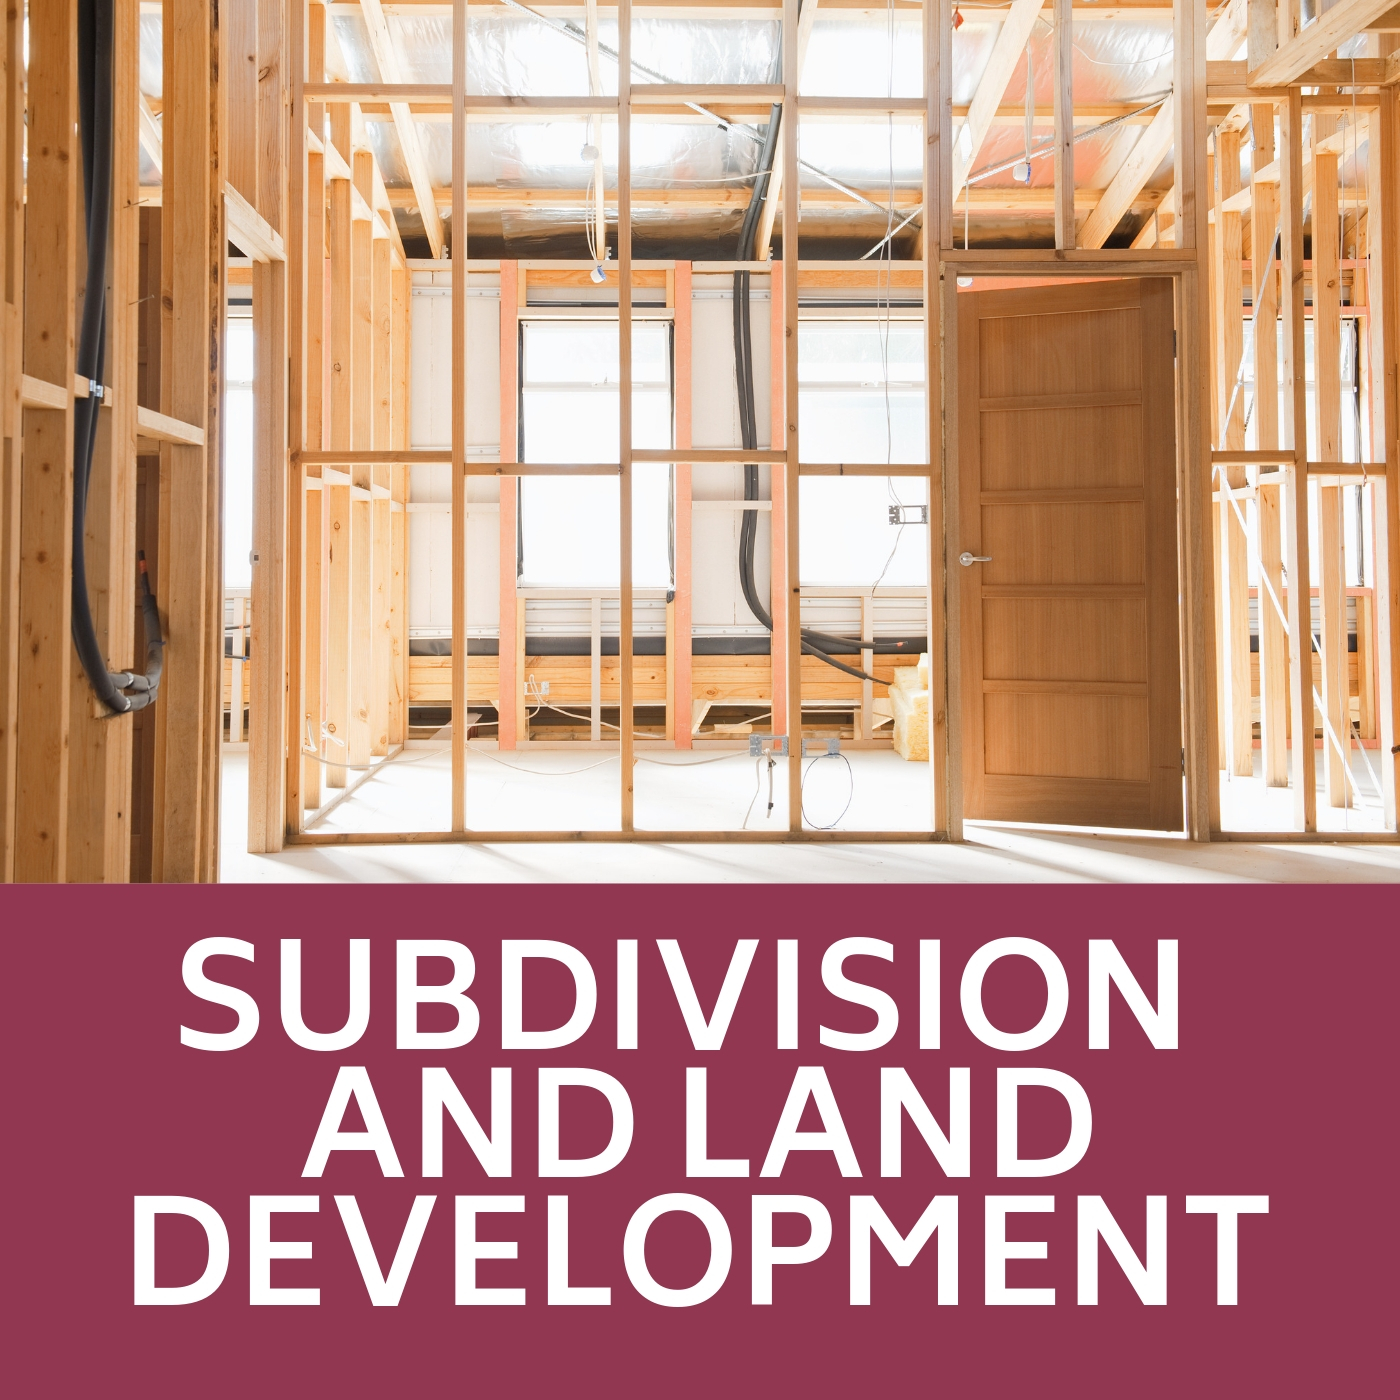 "Image of house being constructed and text ""Subdivision and Lend Development"" that links to information about  subdivision and land development."